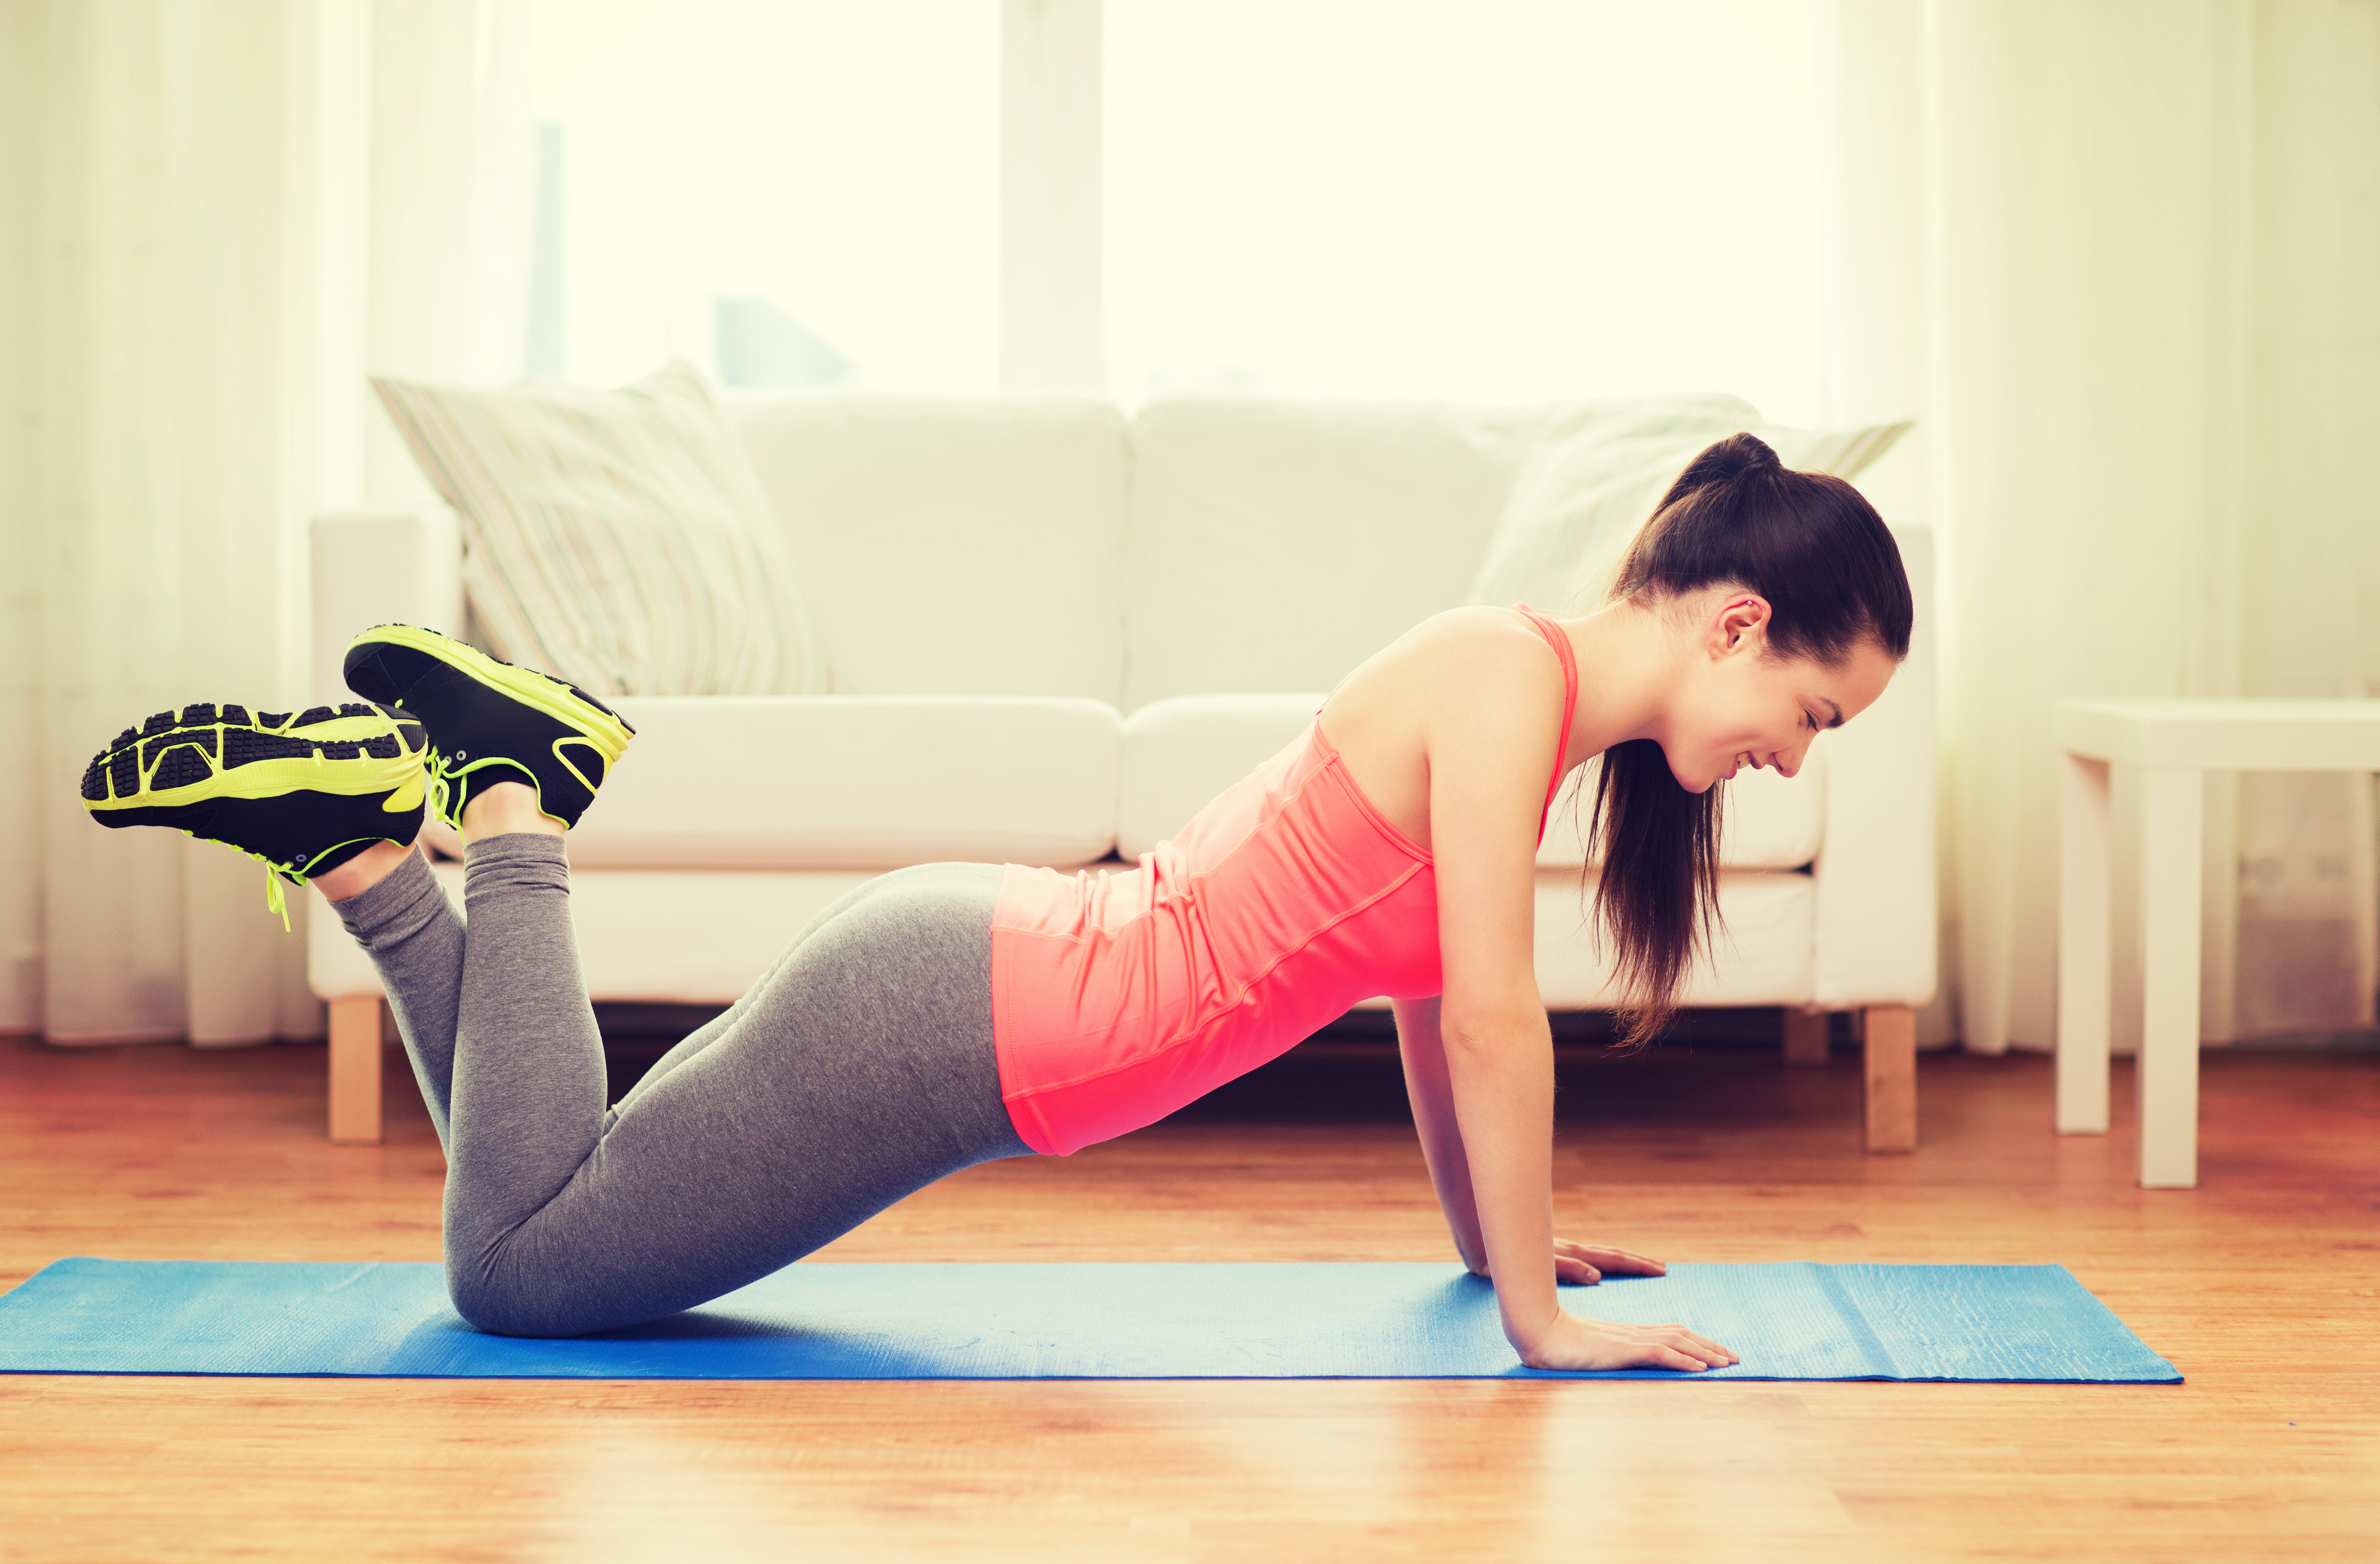 Slimmer Thighs and a Firm Butt In No Time With Easy Workout Plan